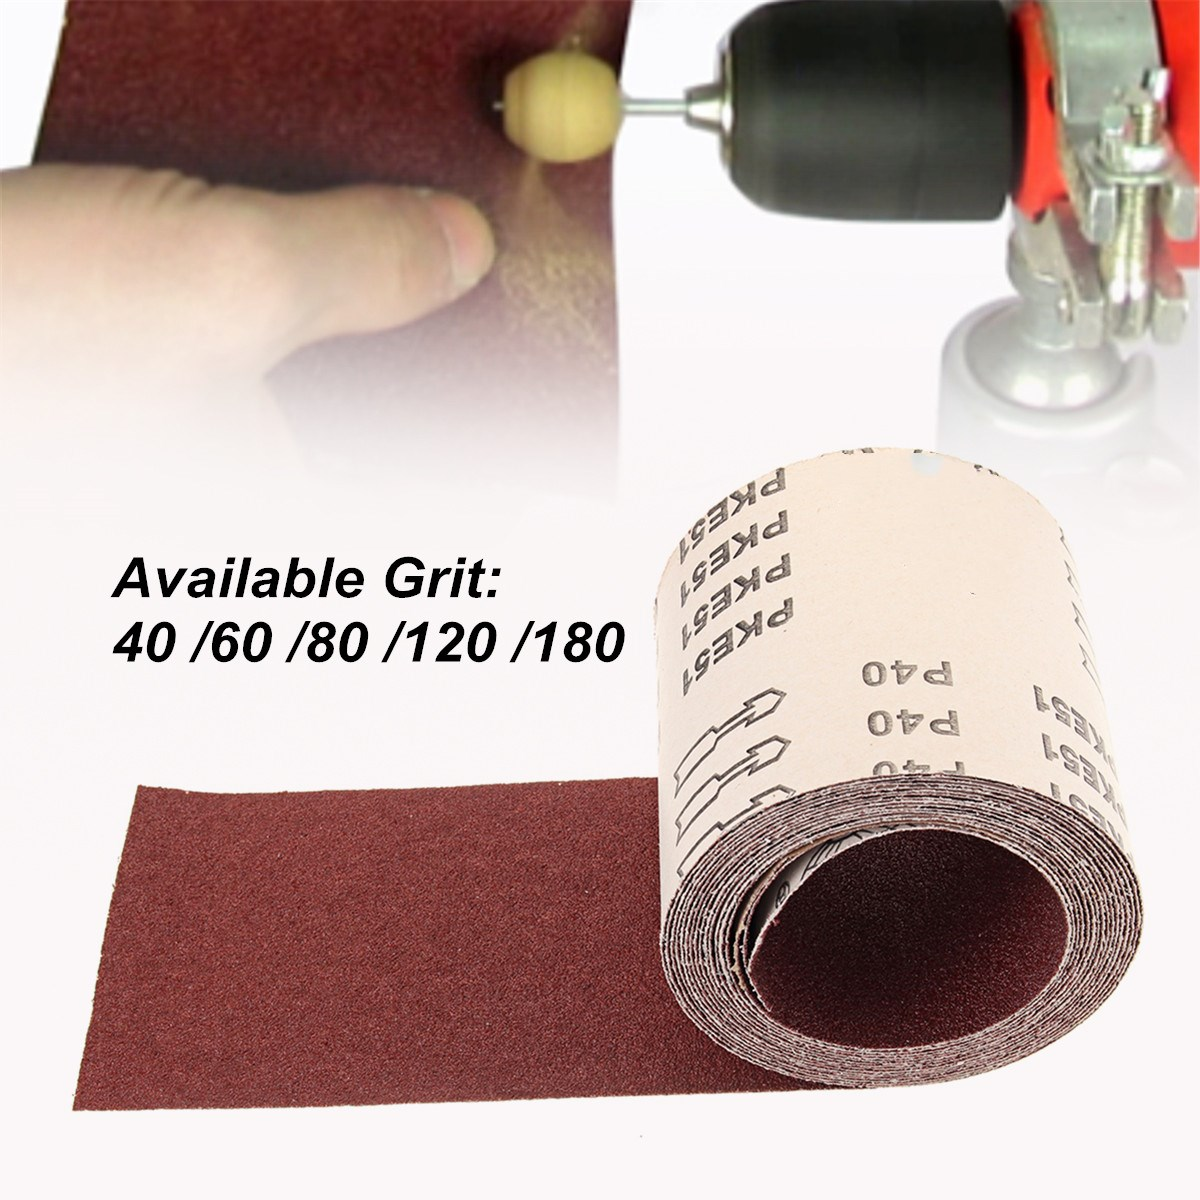 115mm X 5m Aluminium Oxide Sanding Roll 40/60/80/120/180 Grit SandPaper Sander Abrasive Polishing Accessories Woodworking Tools